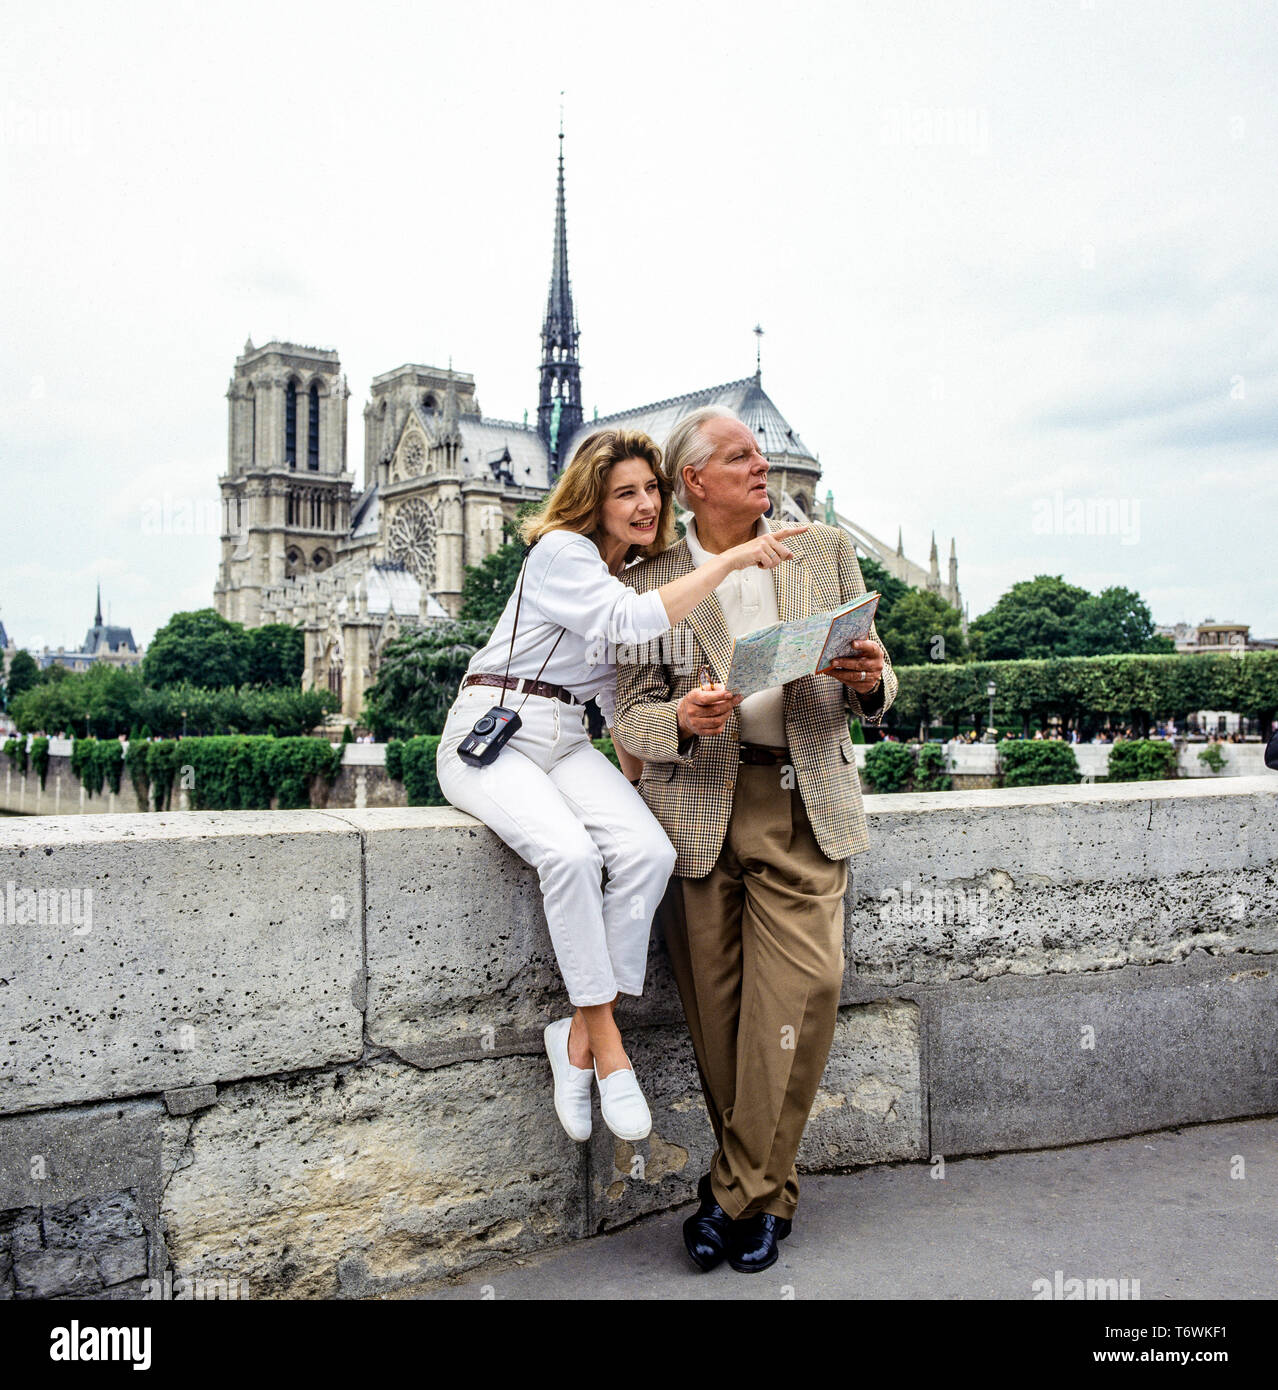 Couple of middle aged tourists looking at city map in front of Notre-Dame de Paris cathedral before the fire of April 15, 2019, Paris, France, Europe, Stock Photo